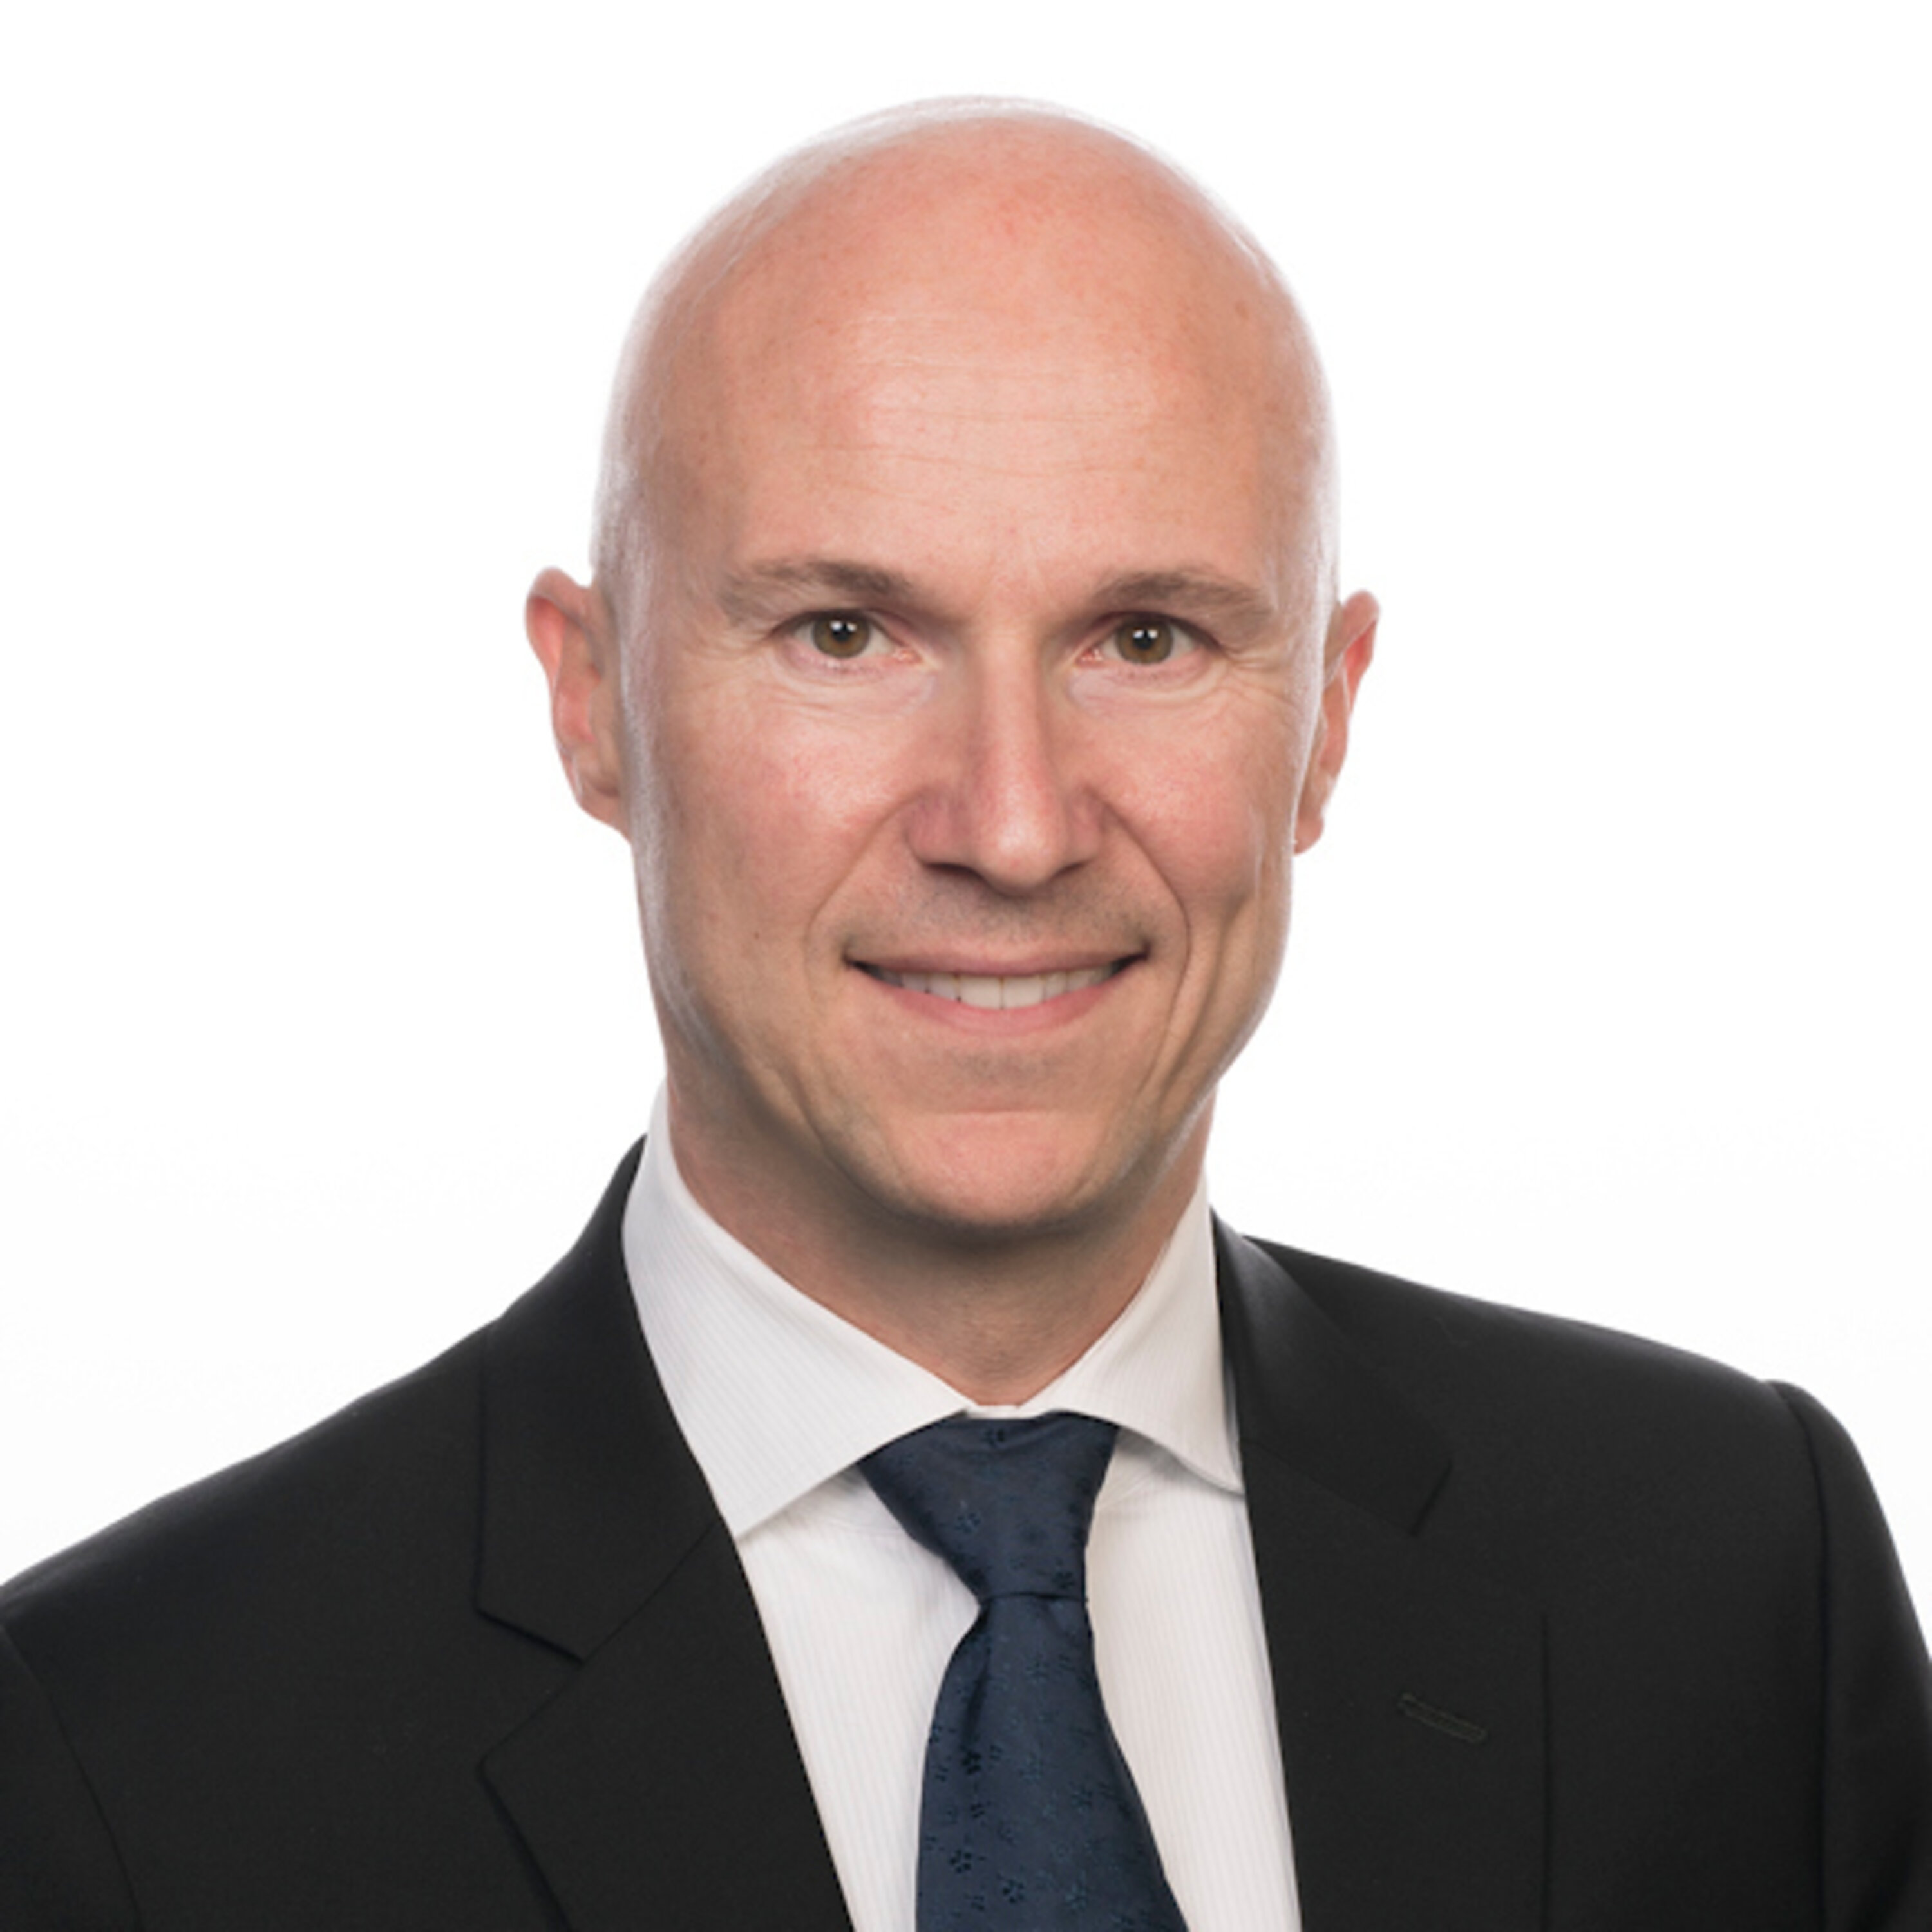 JC DeBeaulieu Head of Investments, Australia at Acadian Asset Management